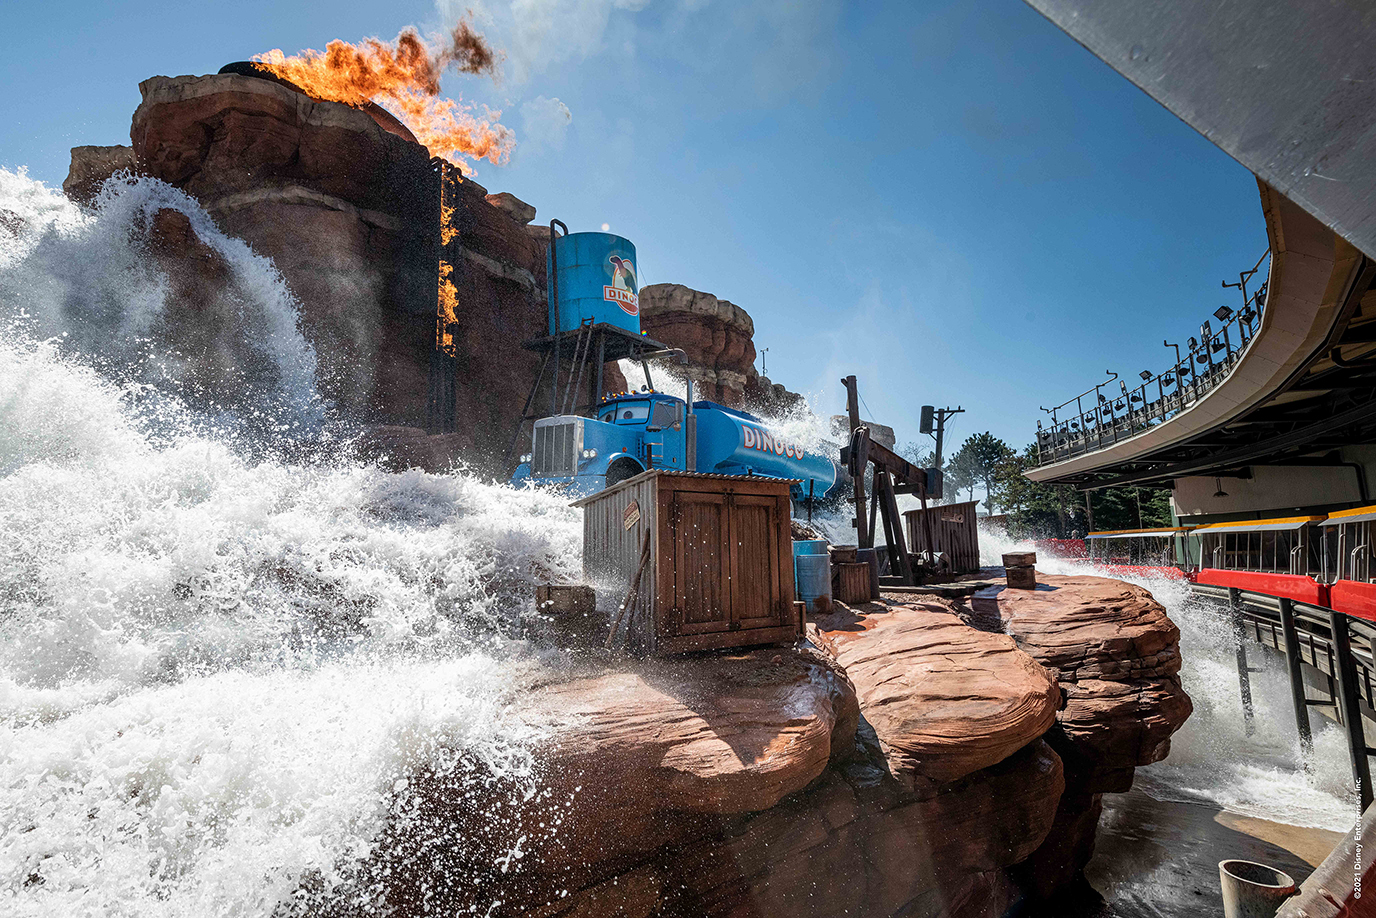 Disneyland Paris Officially Reopens today! 19